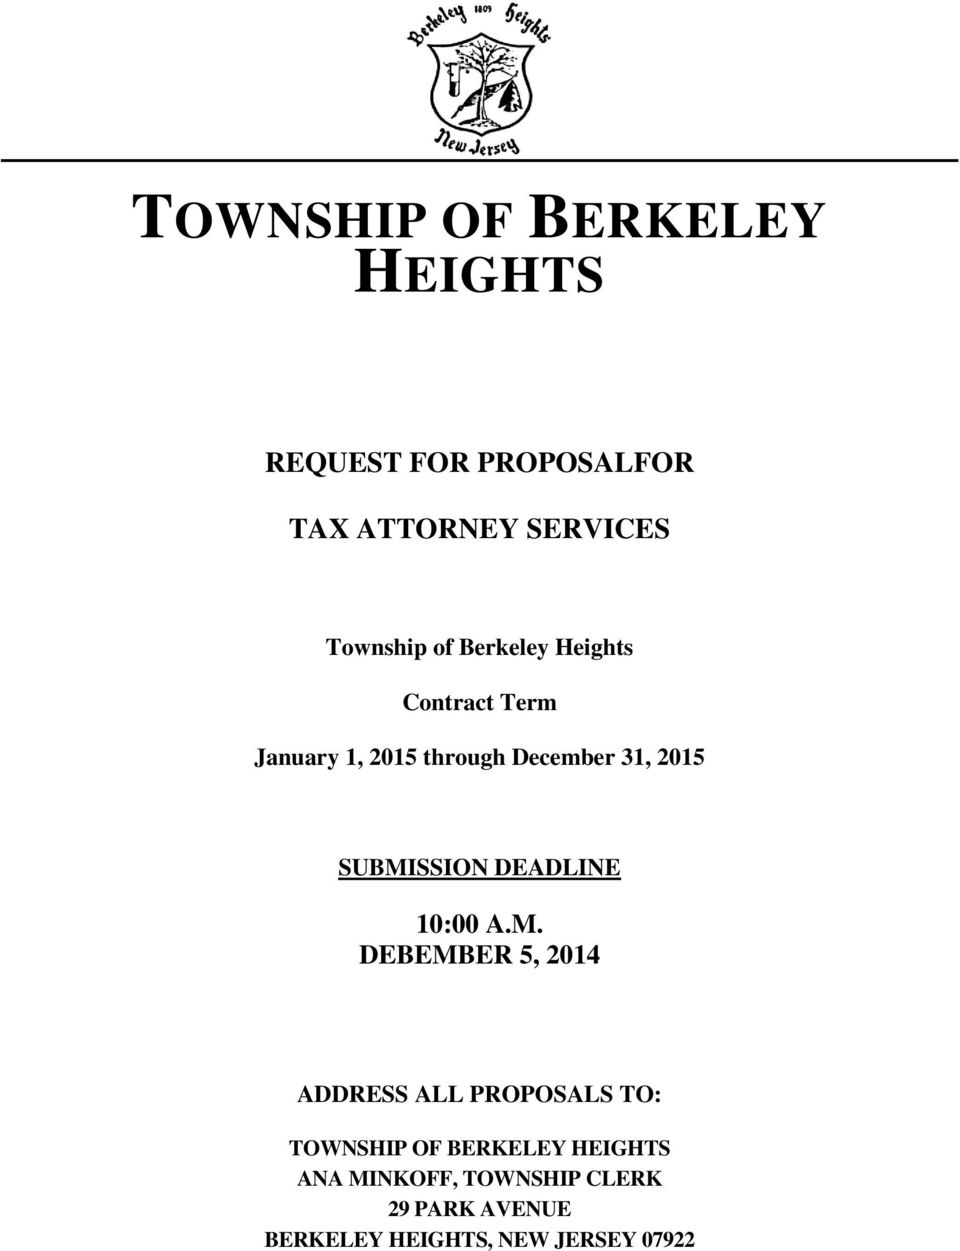 SUBMISSION DEADLINE 10:00 A.M. DEBEMBER 5, 2014 ADDRESS ALL PROPOSALS TO: TOWNSHIP